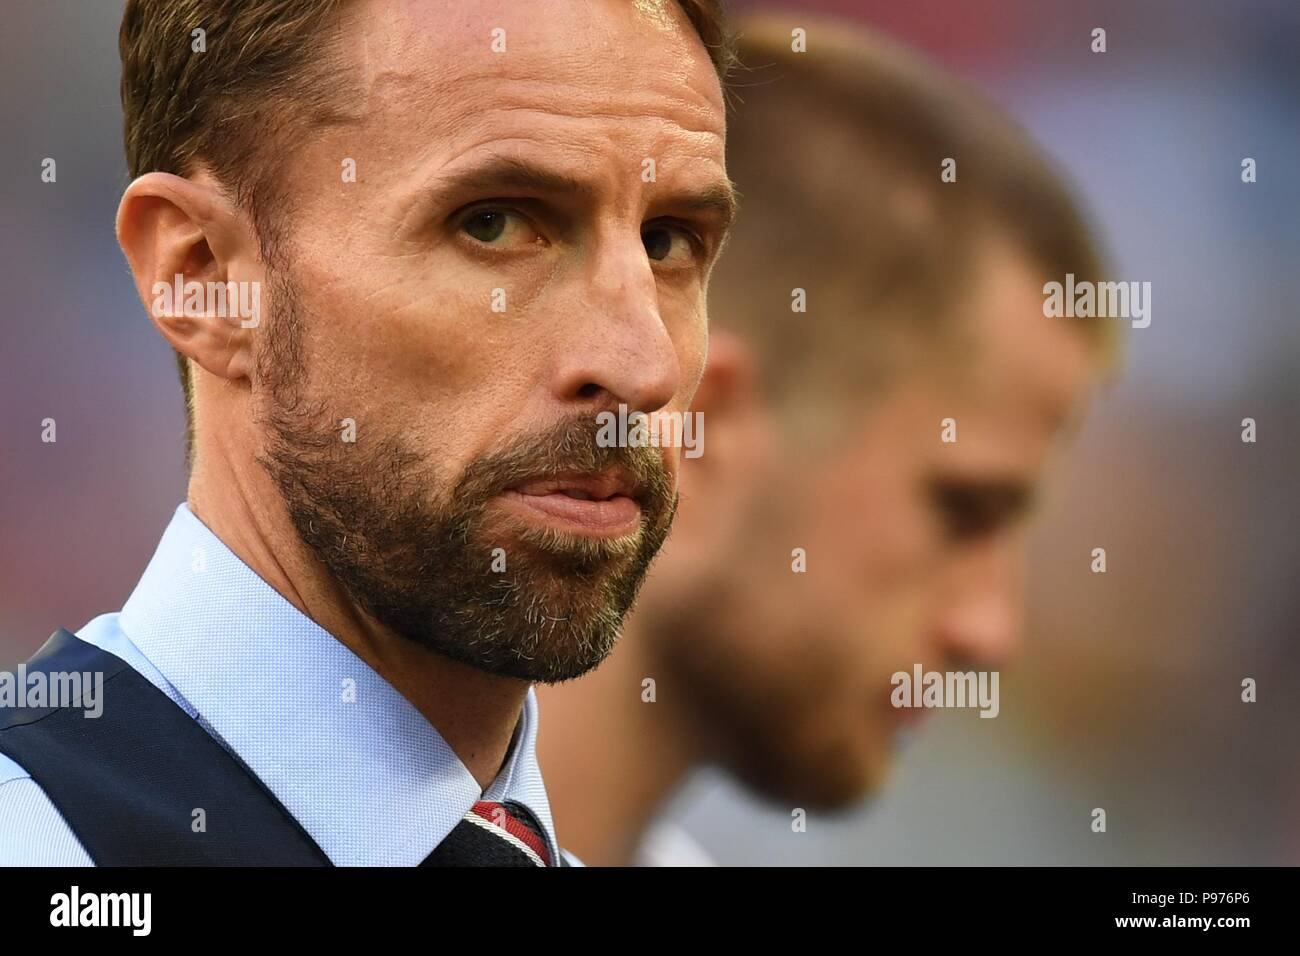 July 14th, 2018, St Petersburg, Russia. Gareth Southgate, England football team coach at 2018 FIFA World Cup Russia match between England and Belgium at Saint-Petersburg Stadium, Russia. Shoja Lak/Alamy Live News - Stock Image